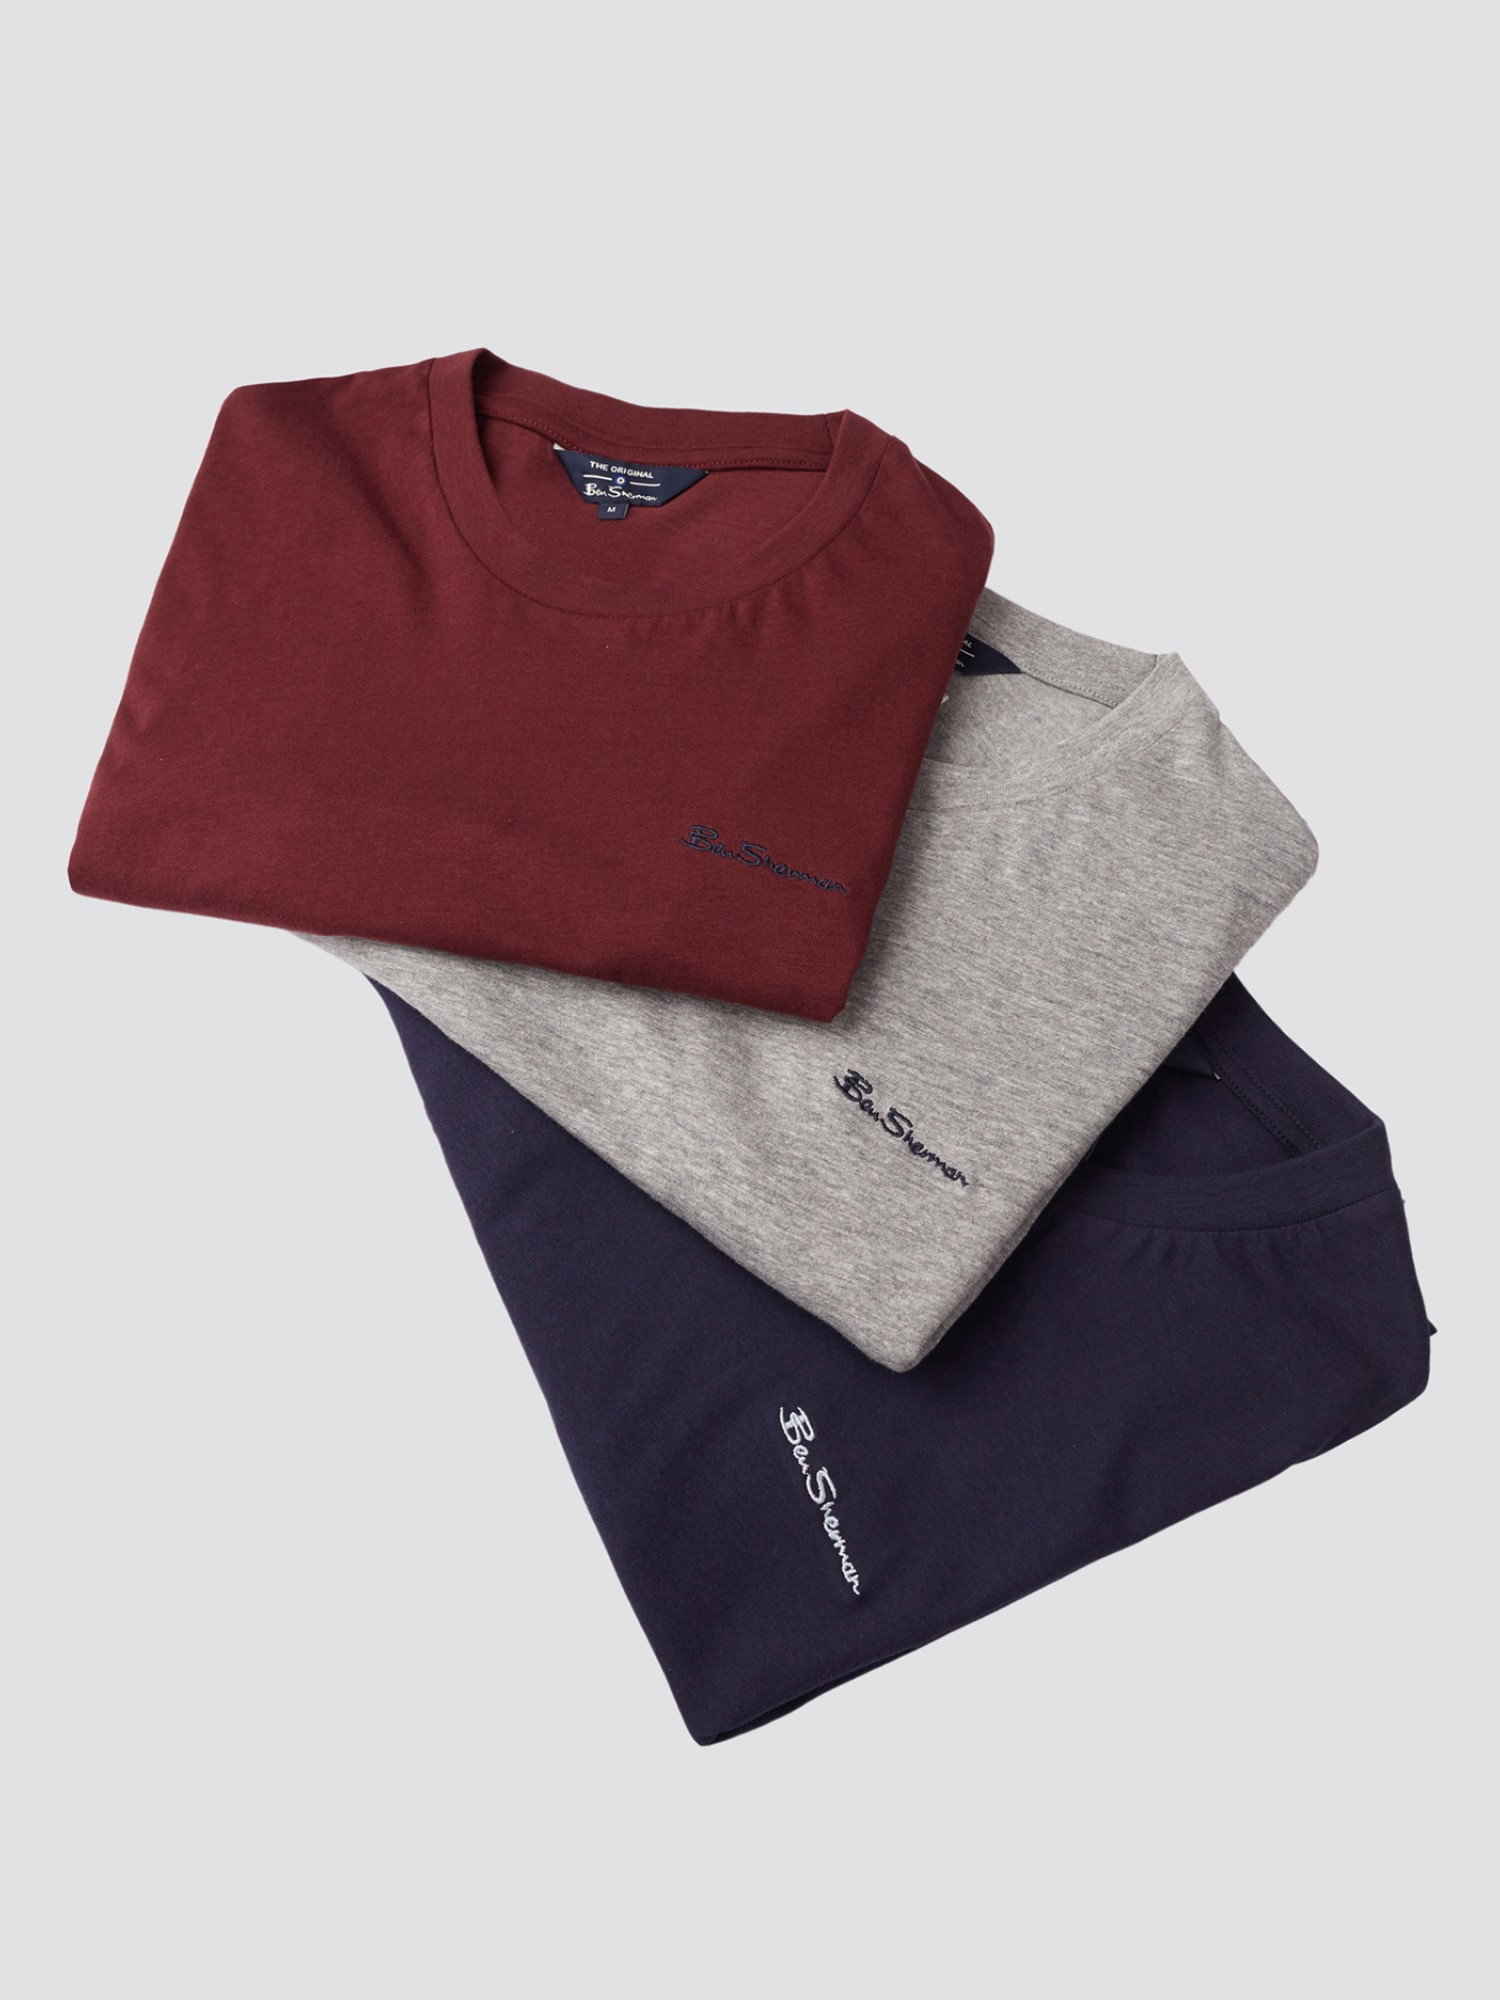 Multipack Ben Sherman Embroidered T-Shirts